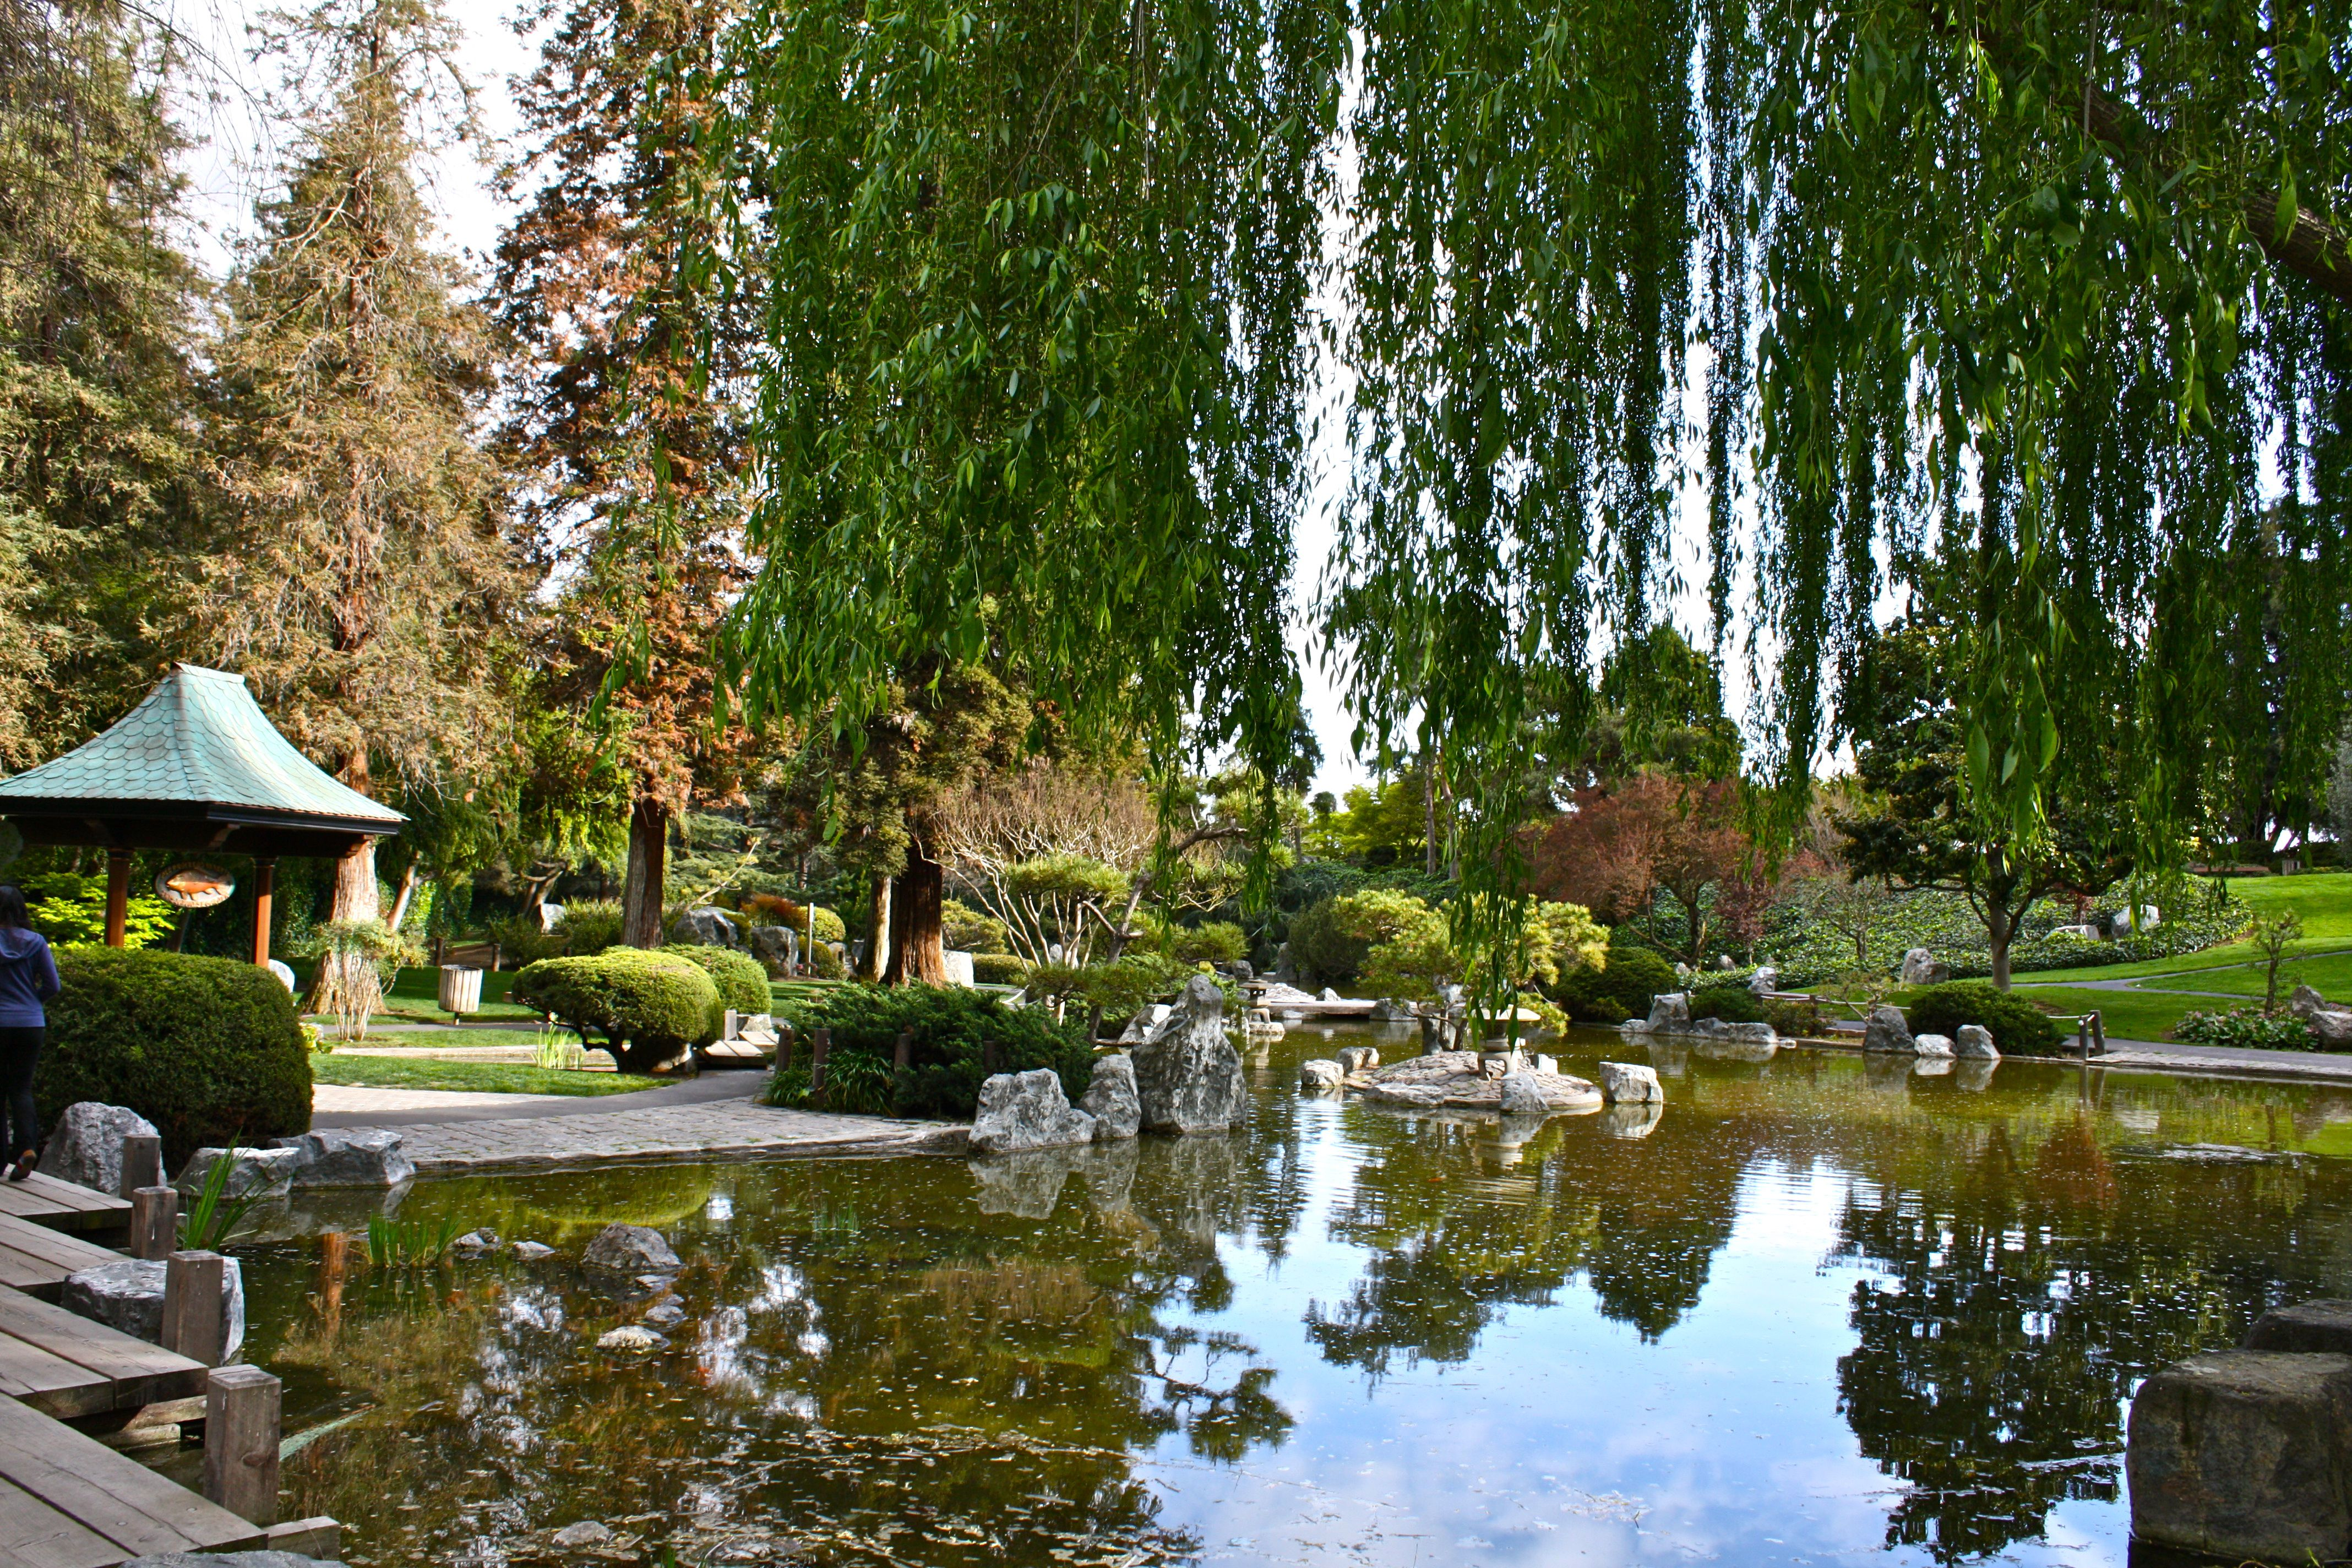 Top Things To Do In Kelley Park San Jose